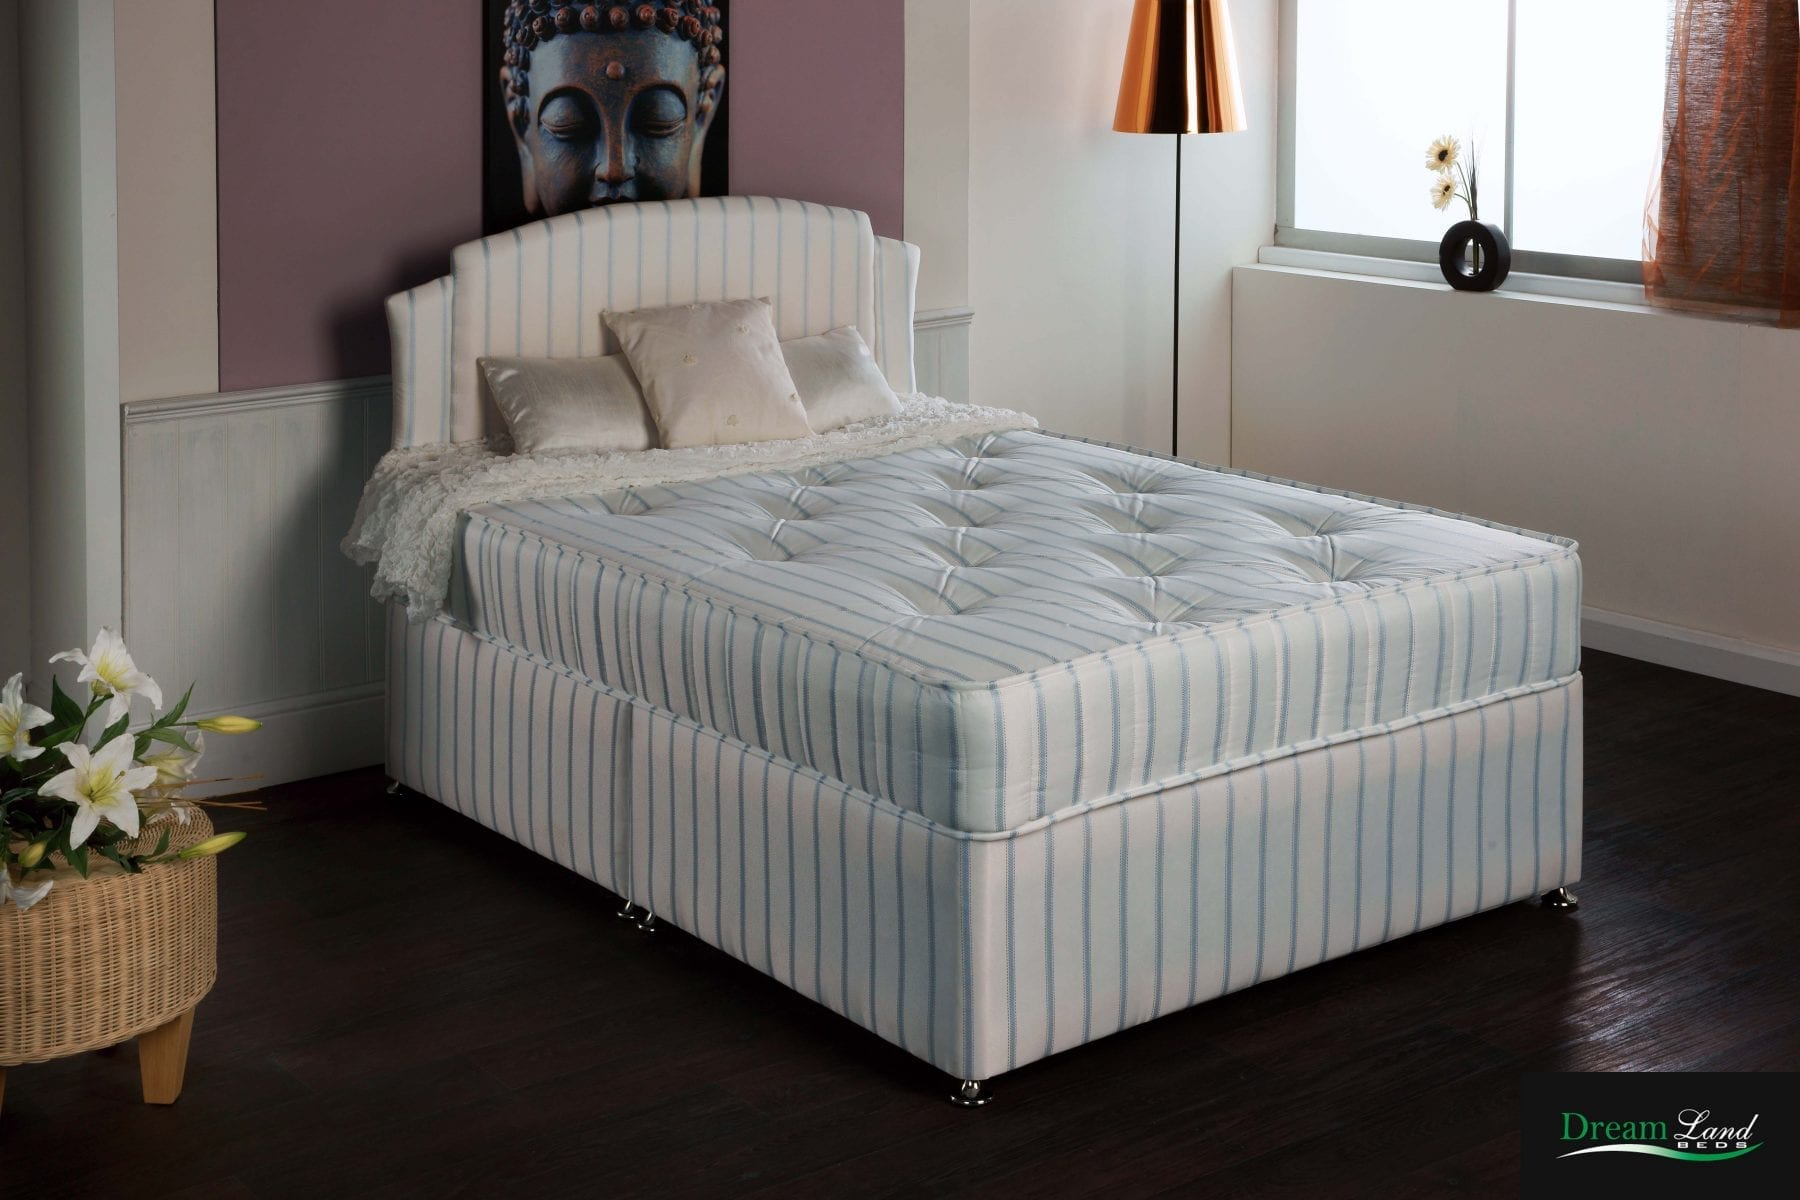 Delhia orthopedic divan bed mattress let us furnish for Orthopedic divan beds